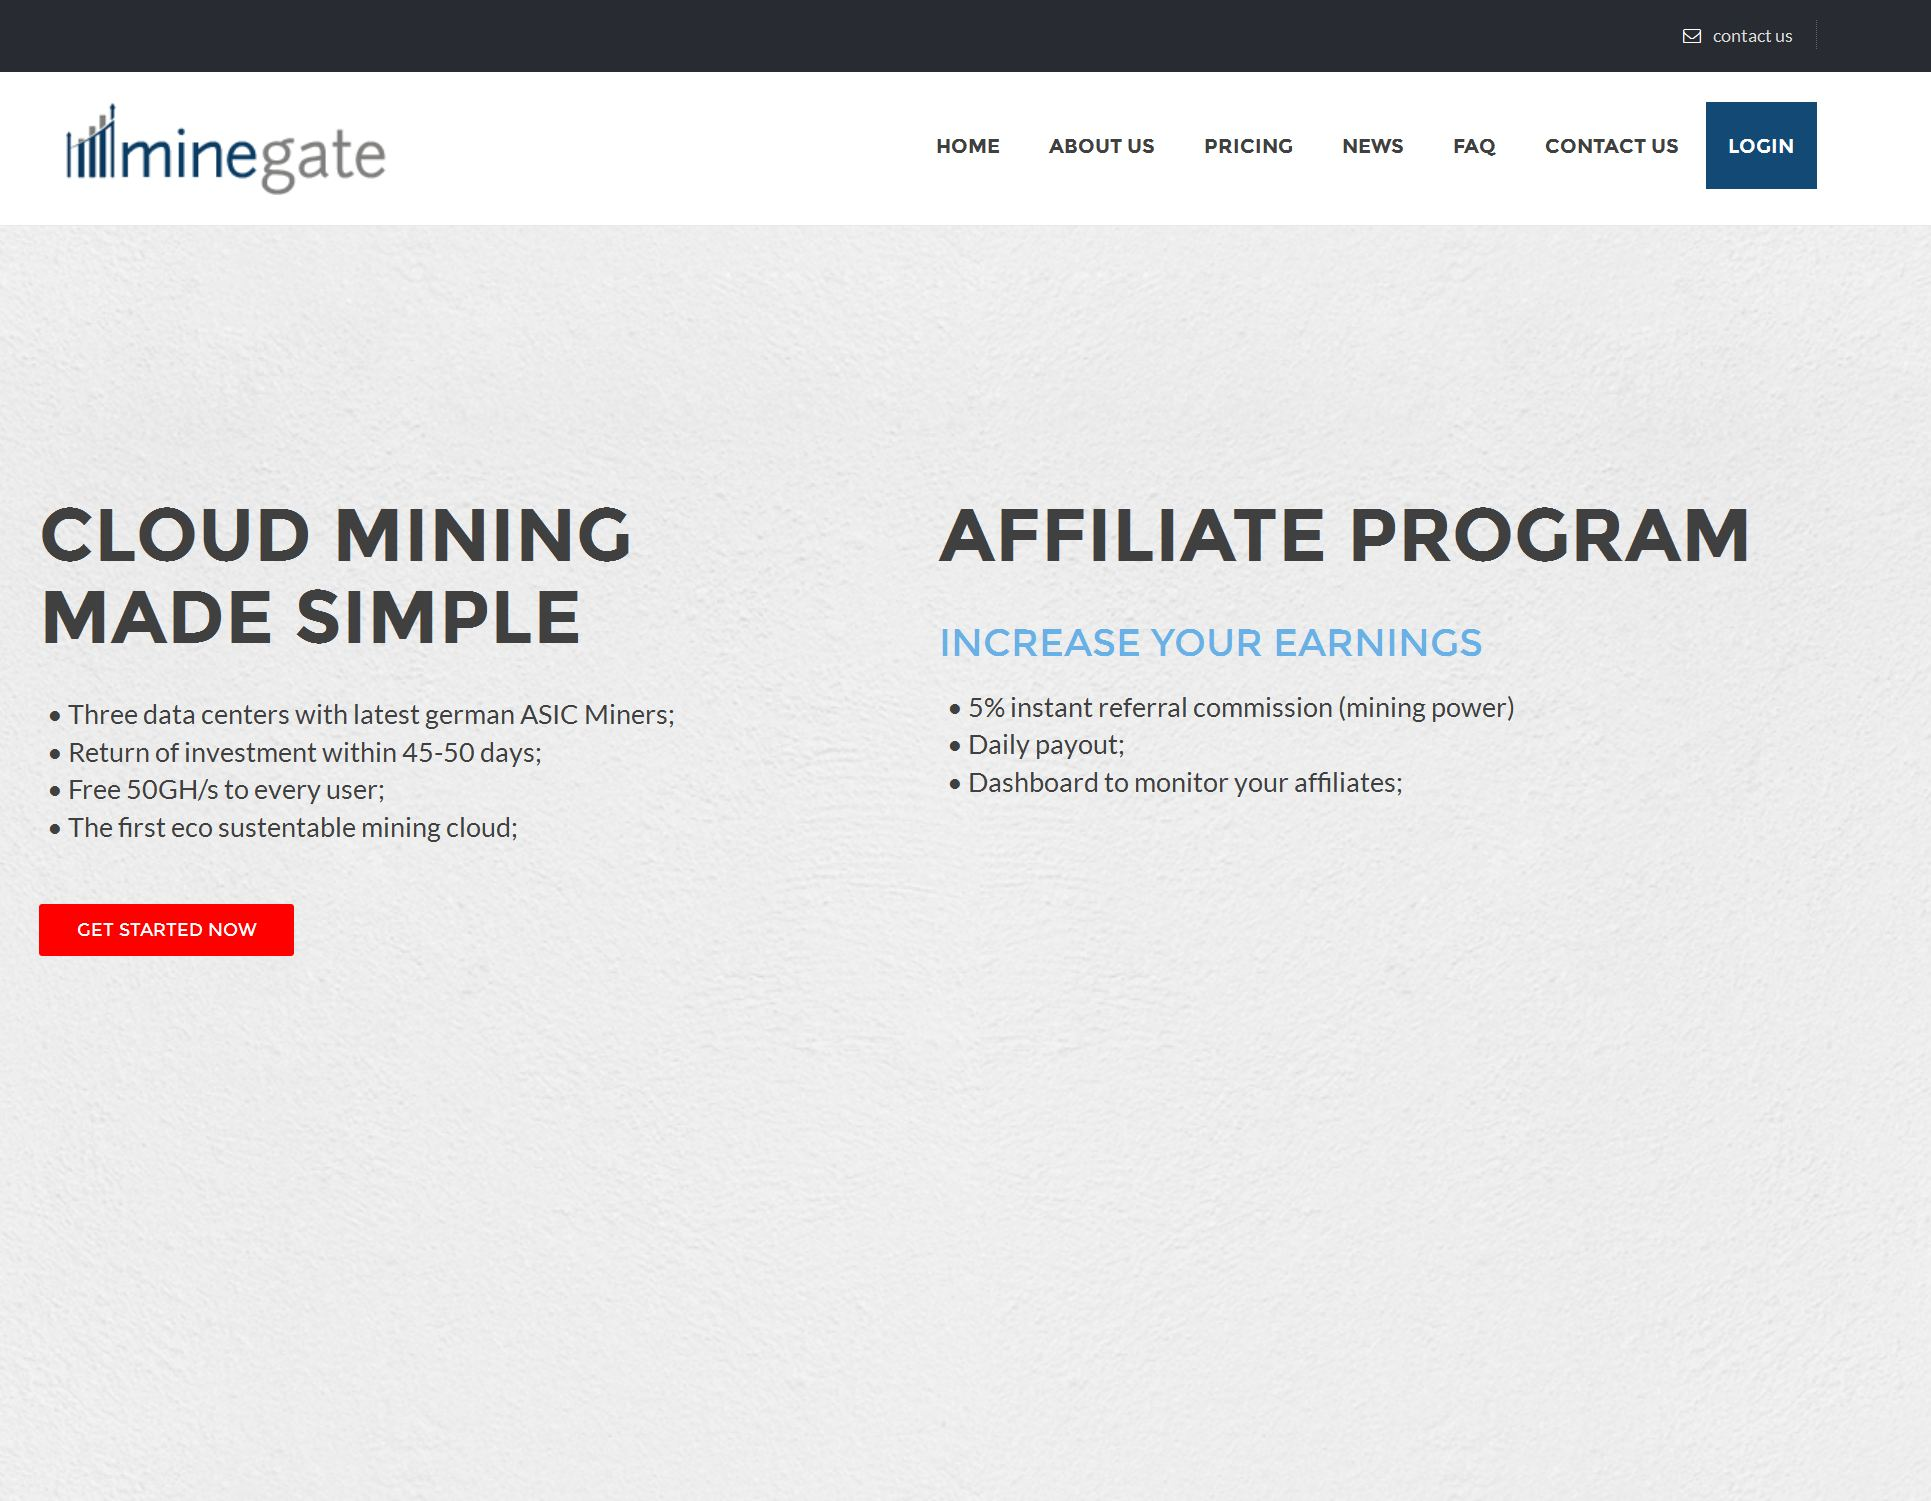 MineGate - another cloud mining service (HYIP) on the HashOcean engine